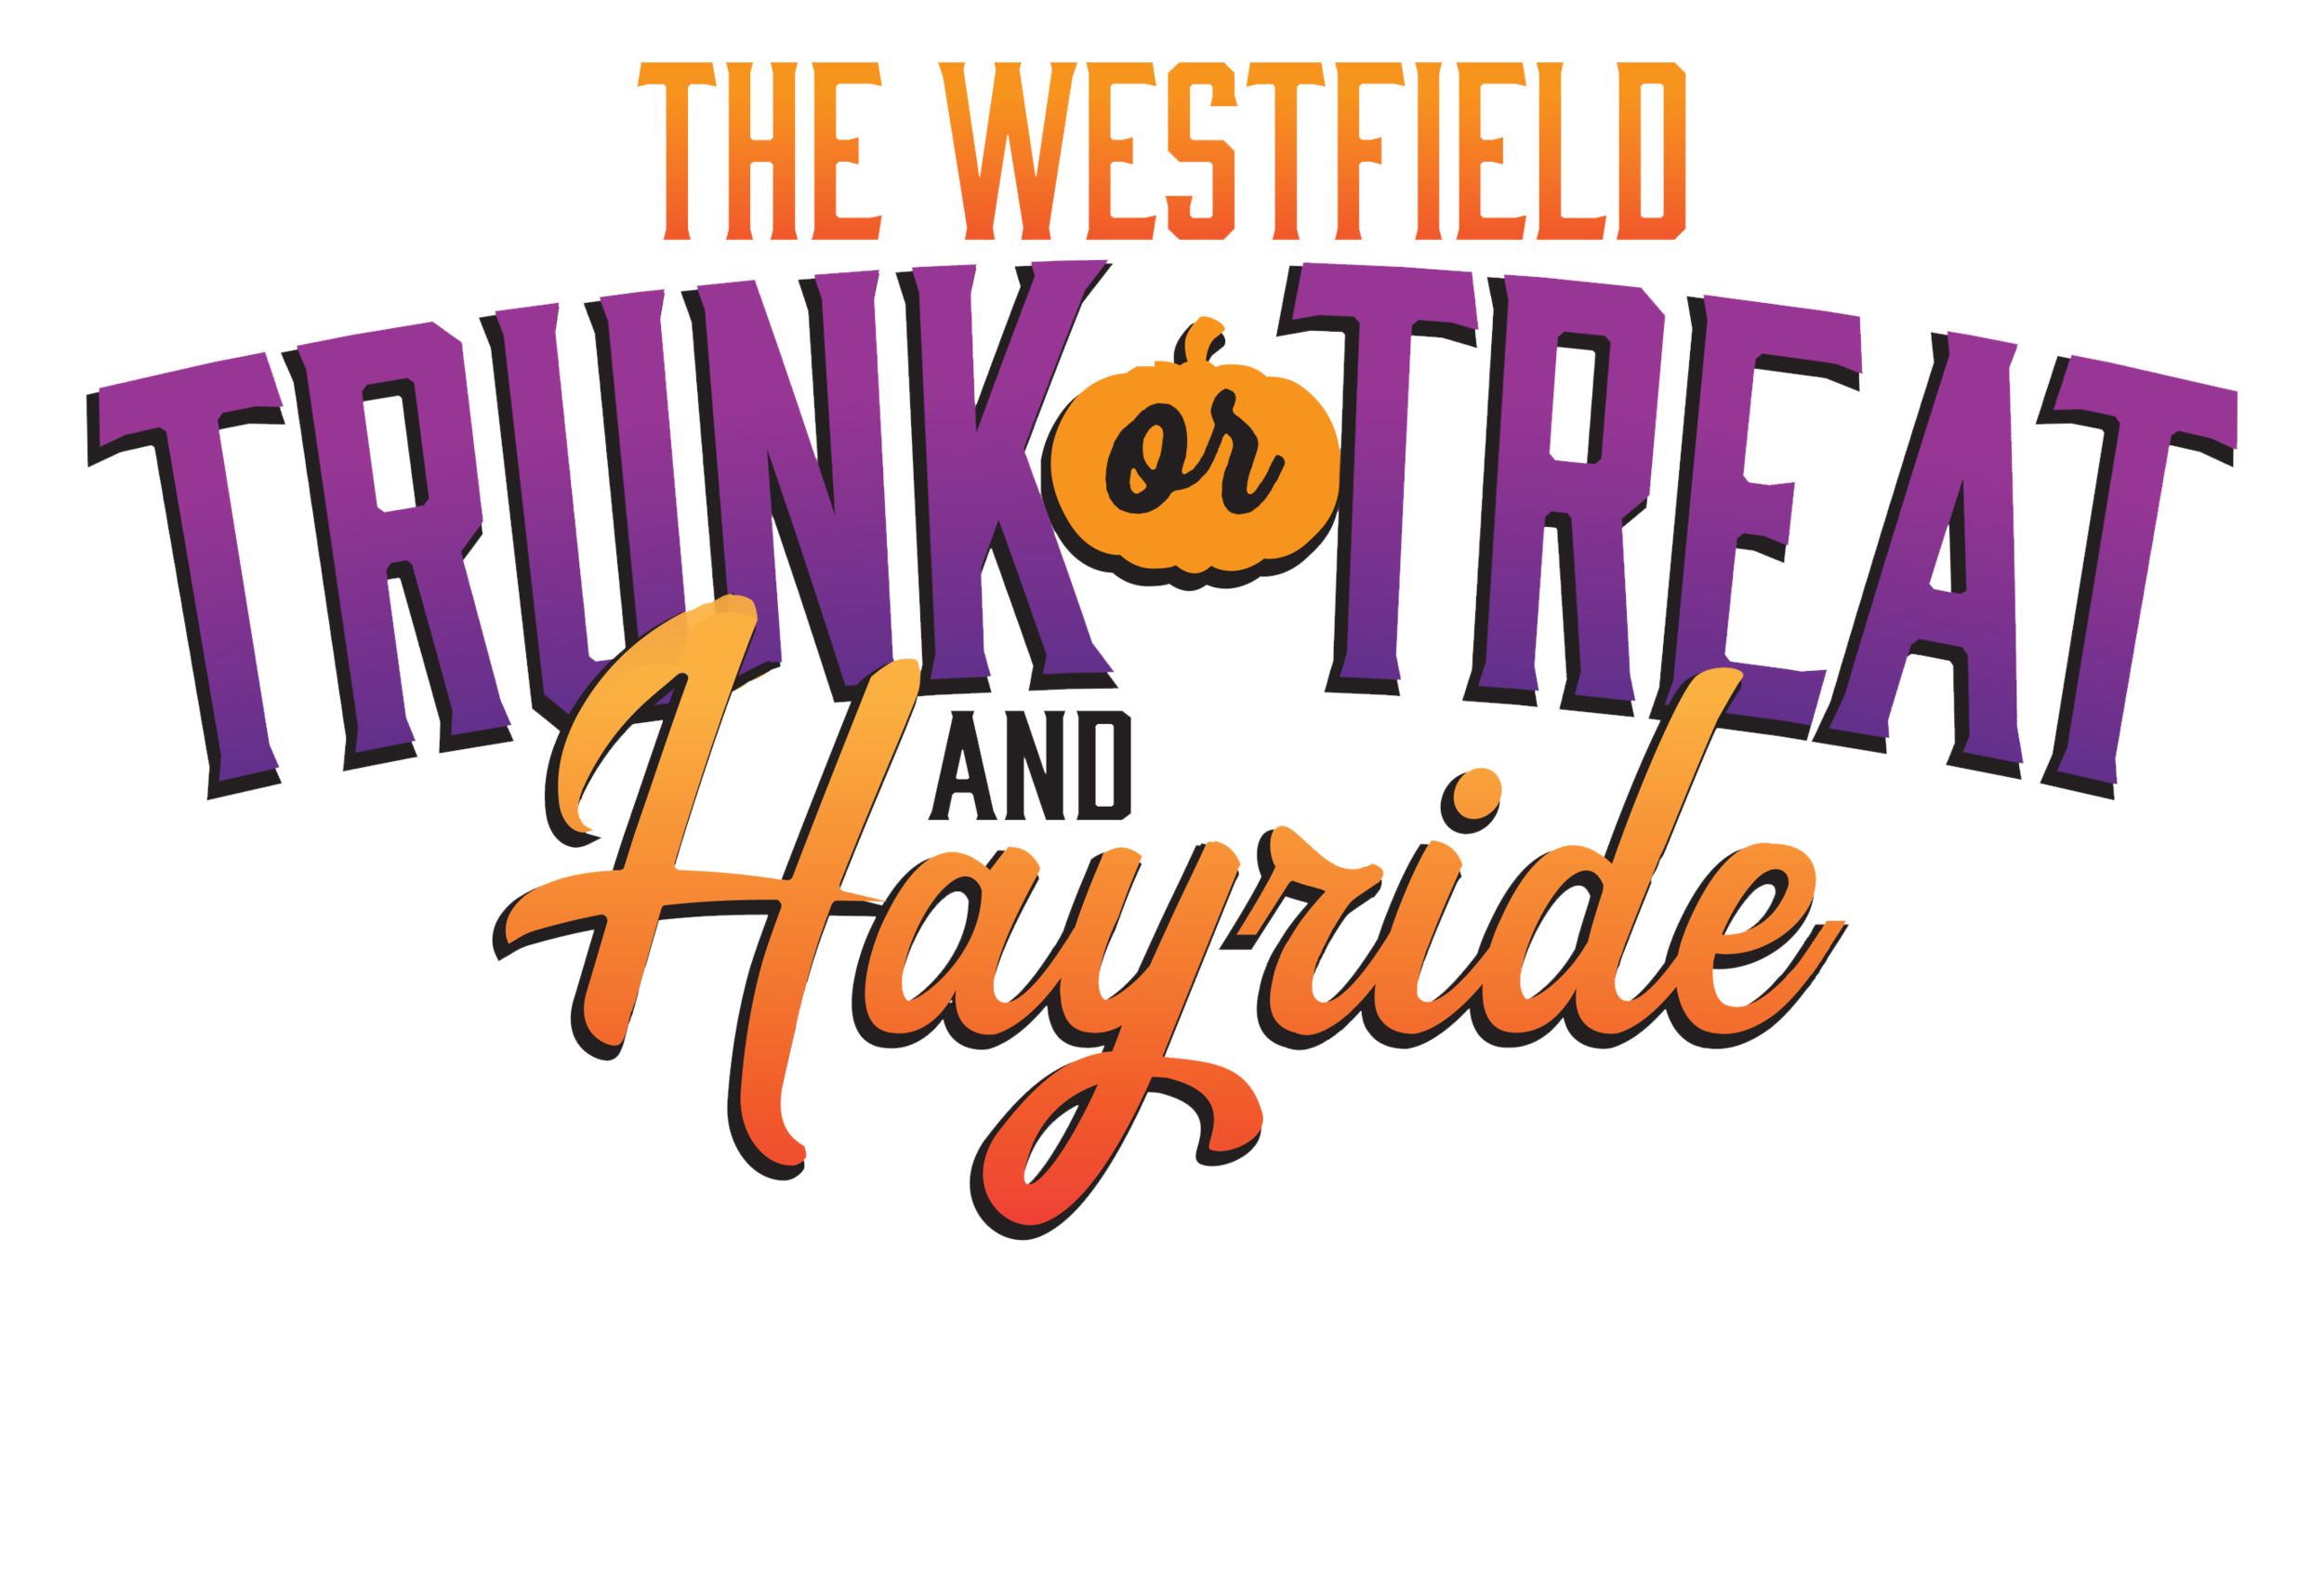 TrunkorTreat_logo-revisions.png